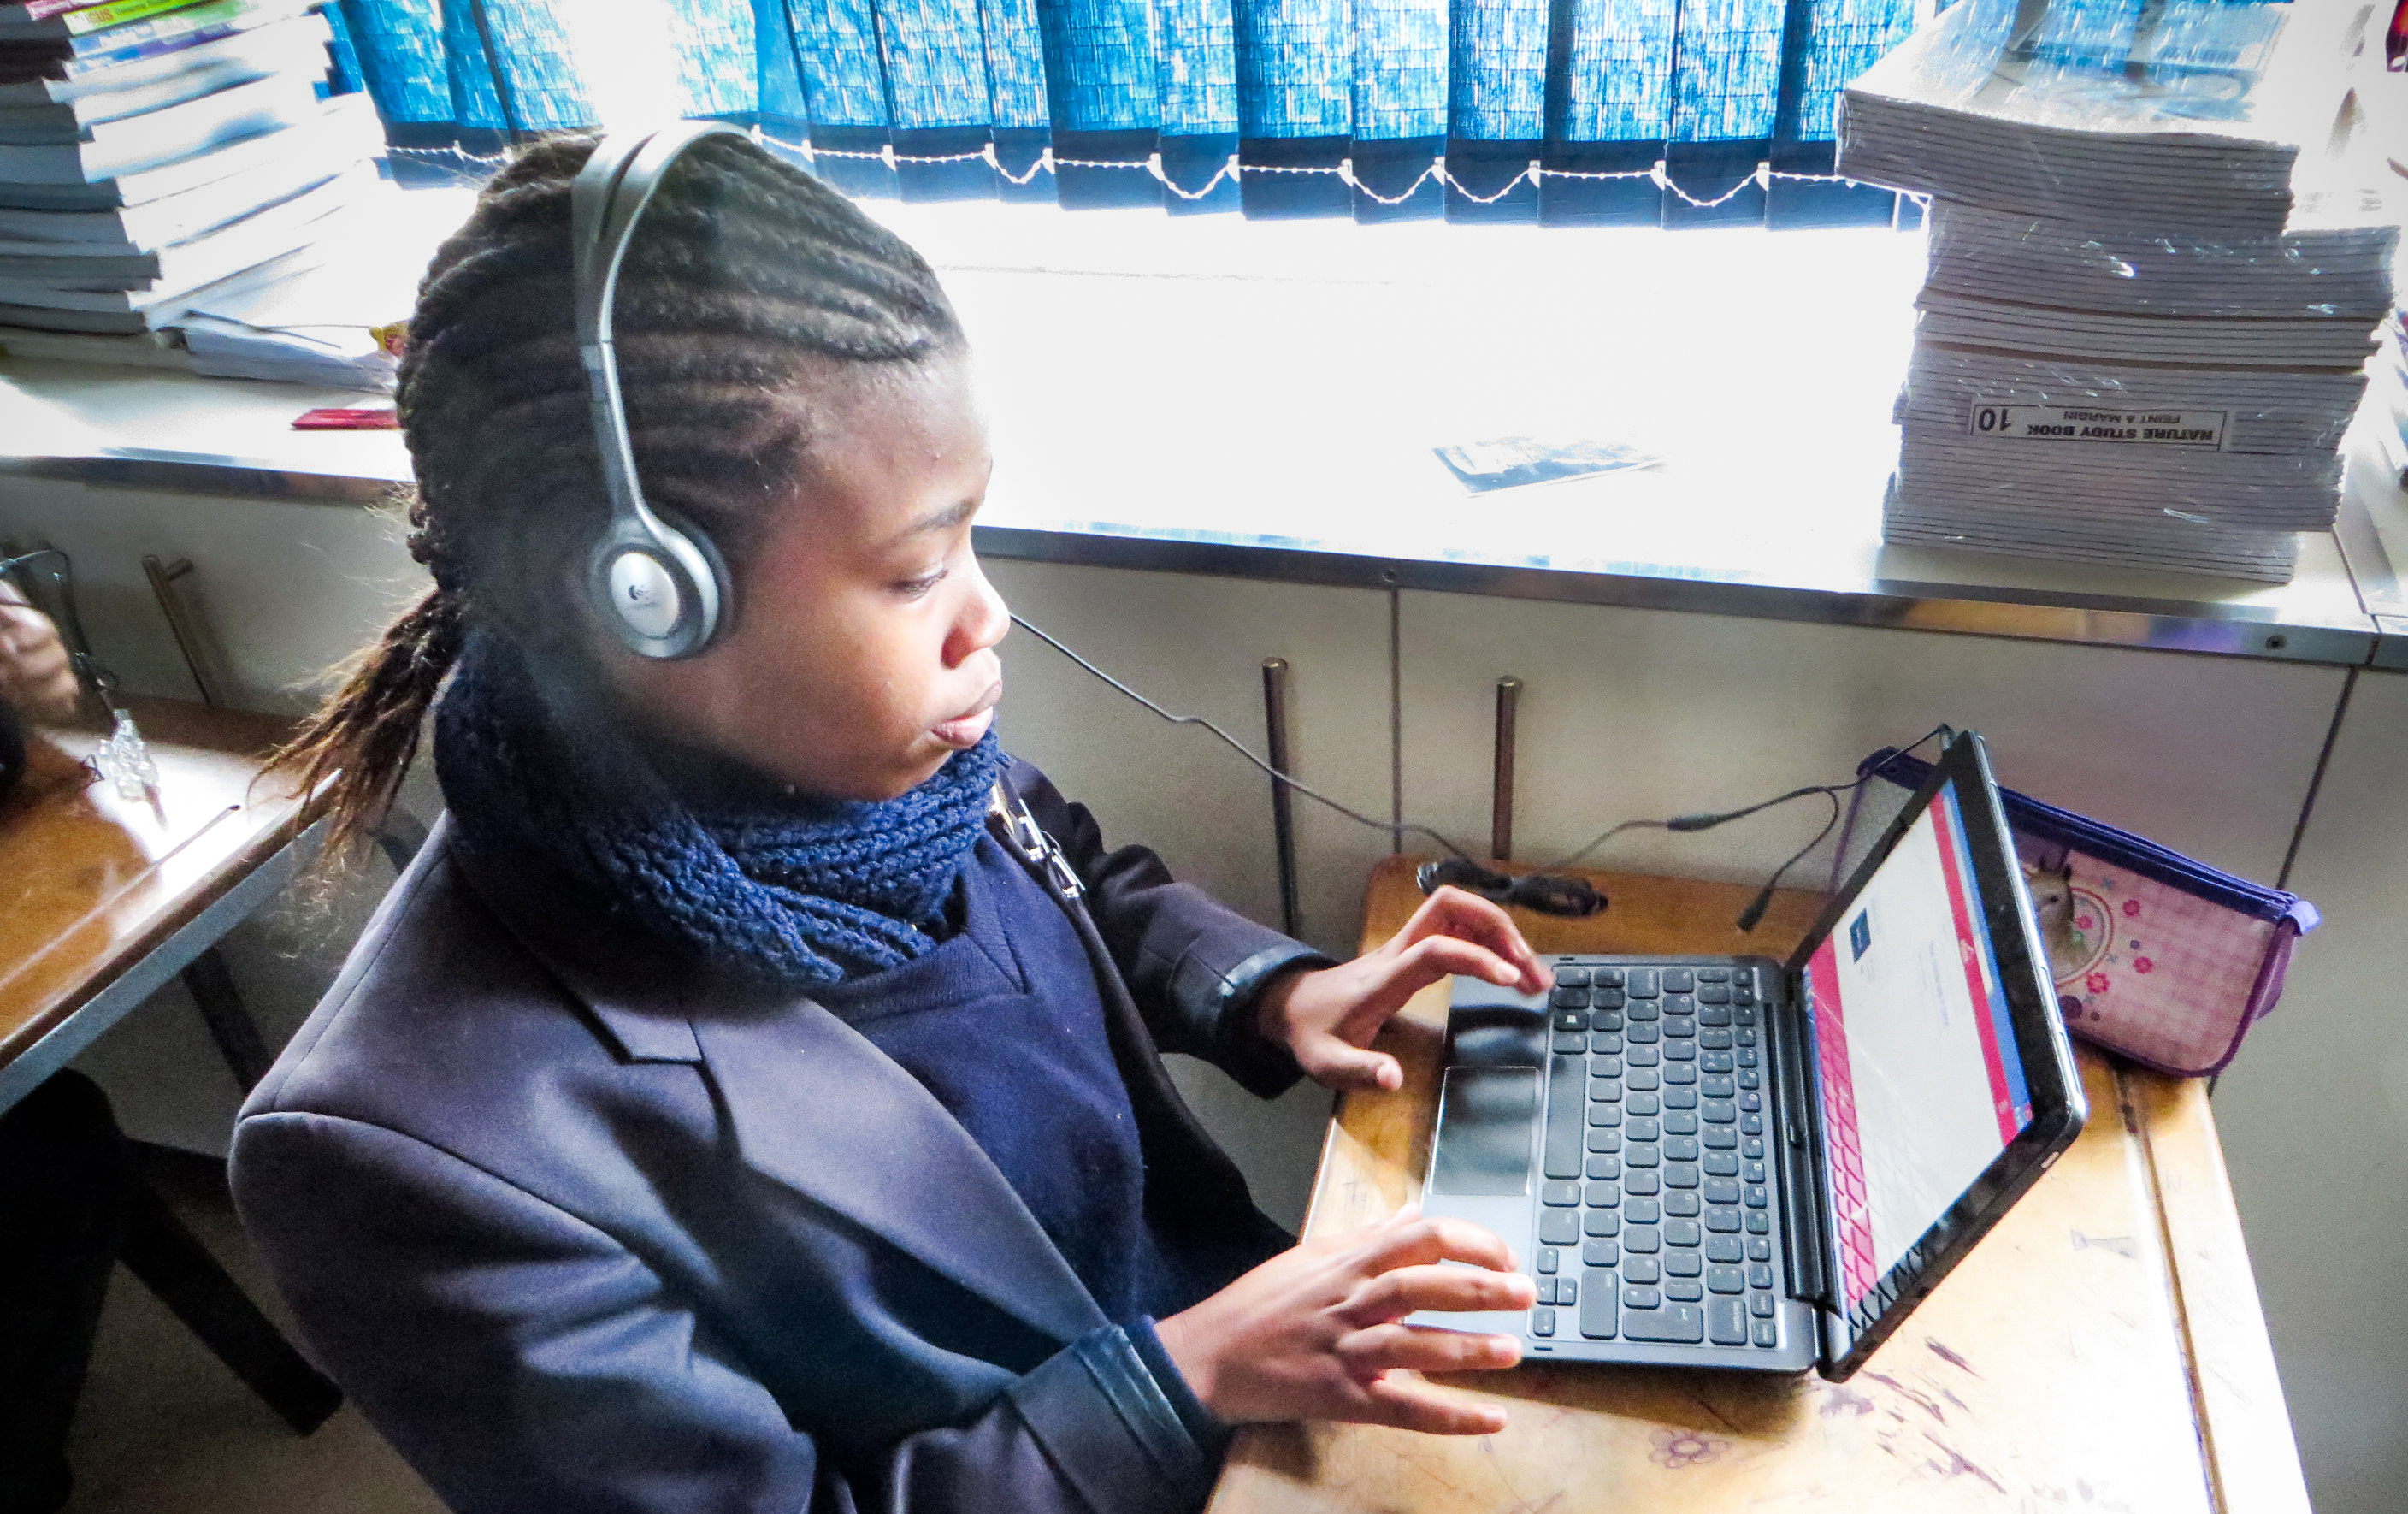 Eduze's CLOX being used by a student in a classroom in South Africa. // Photo from Eduze